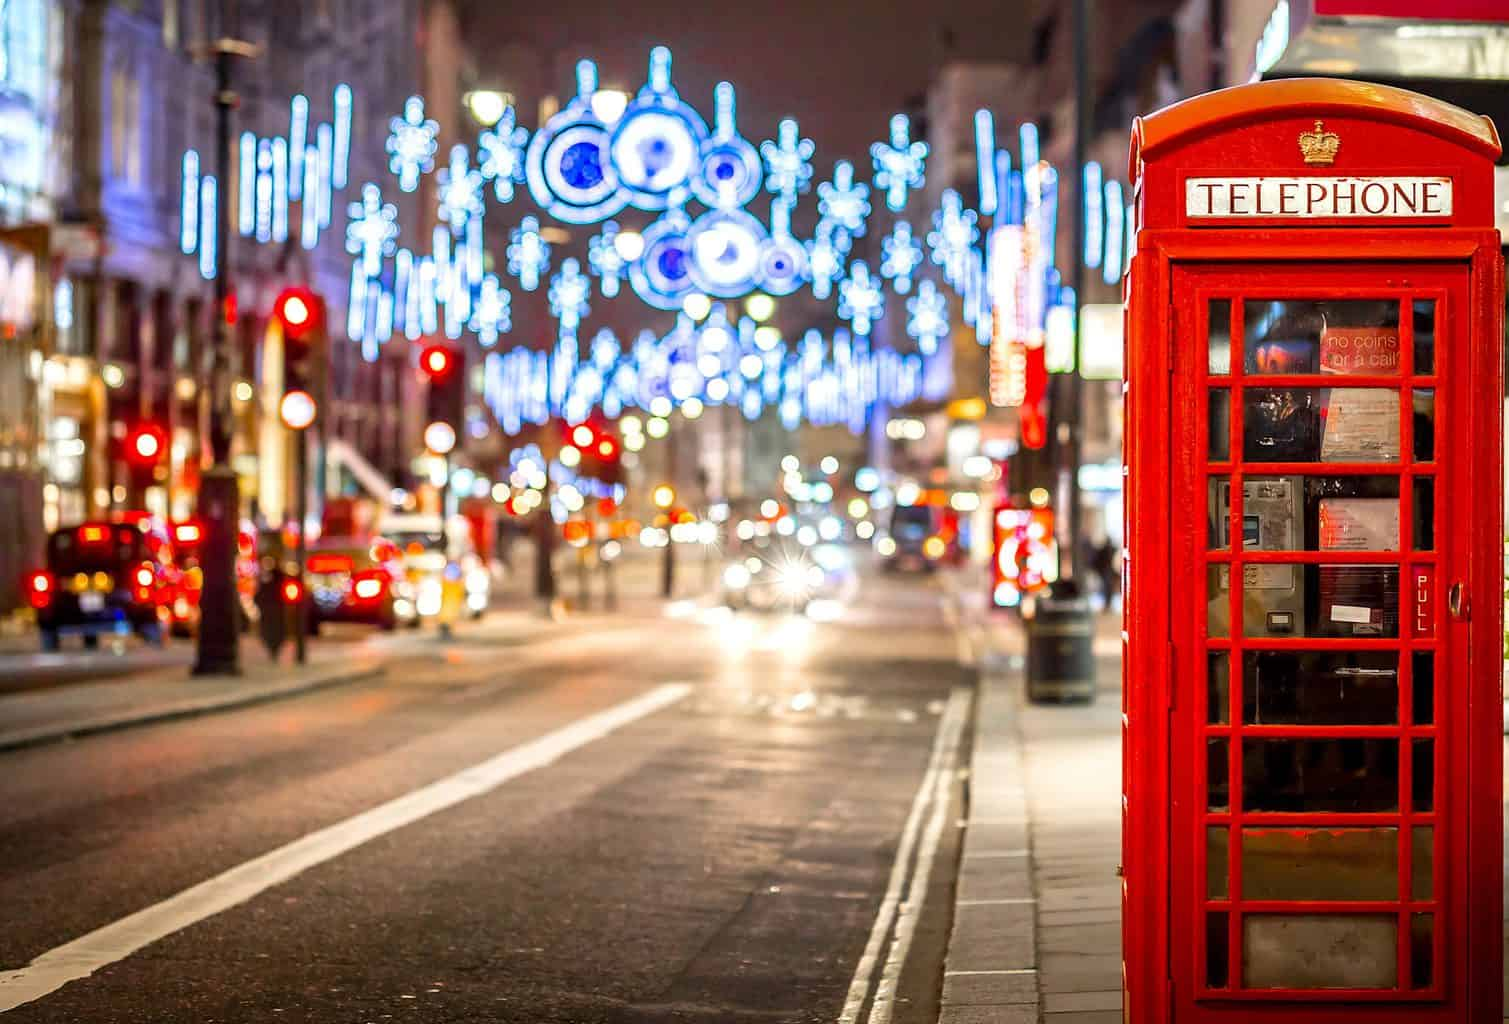 The beautiful holiday lights and iconic, red phone booths that you'll find along the high streets of London throughout the holiday season.